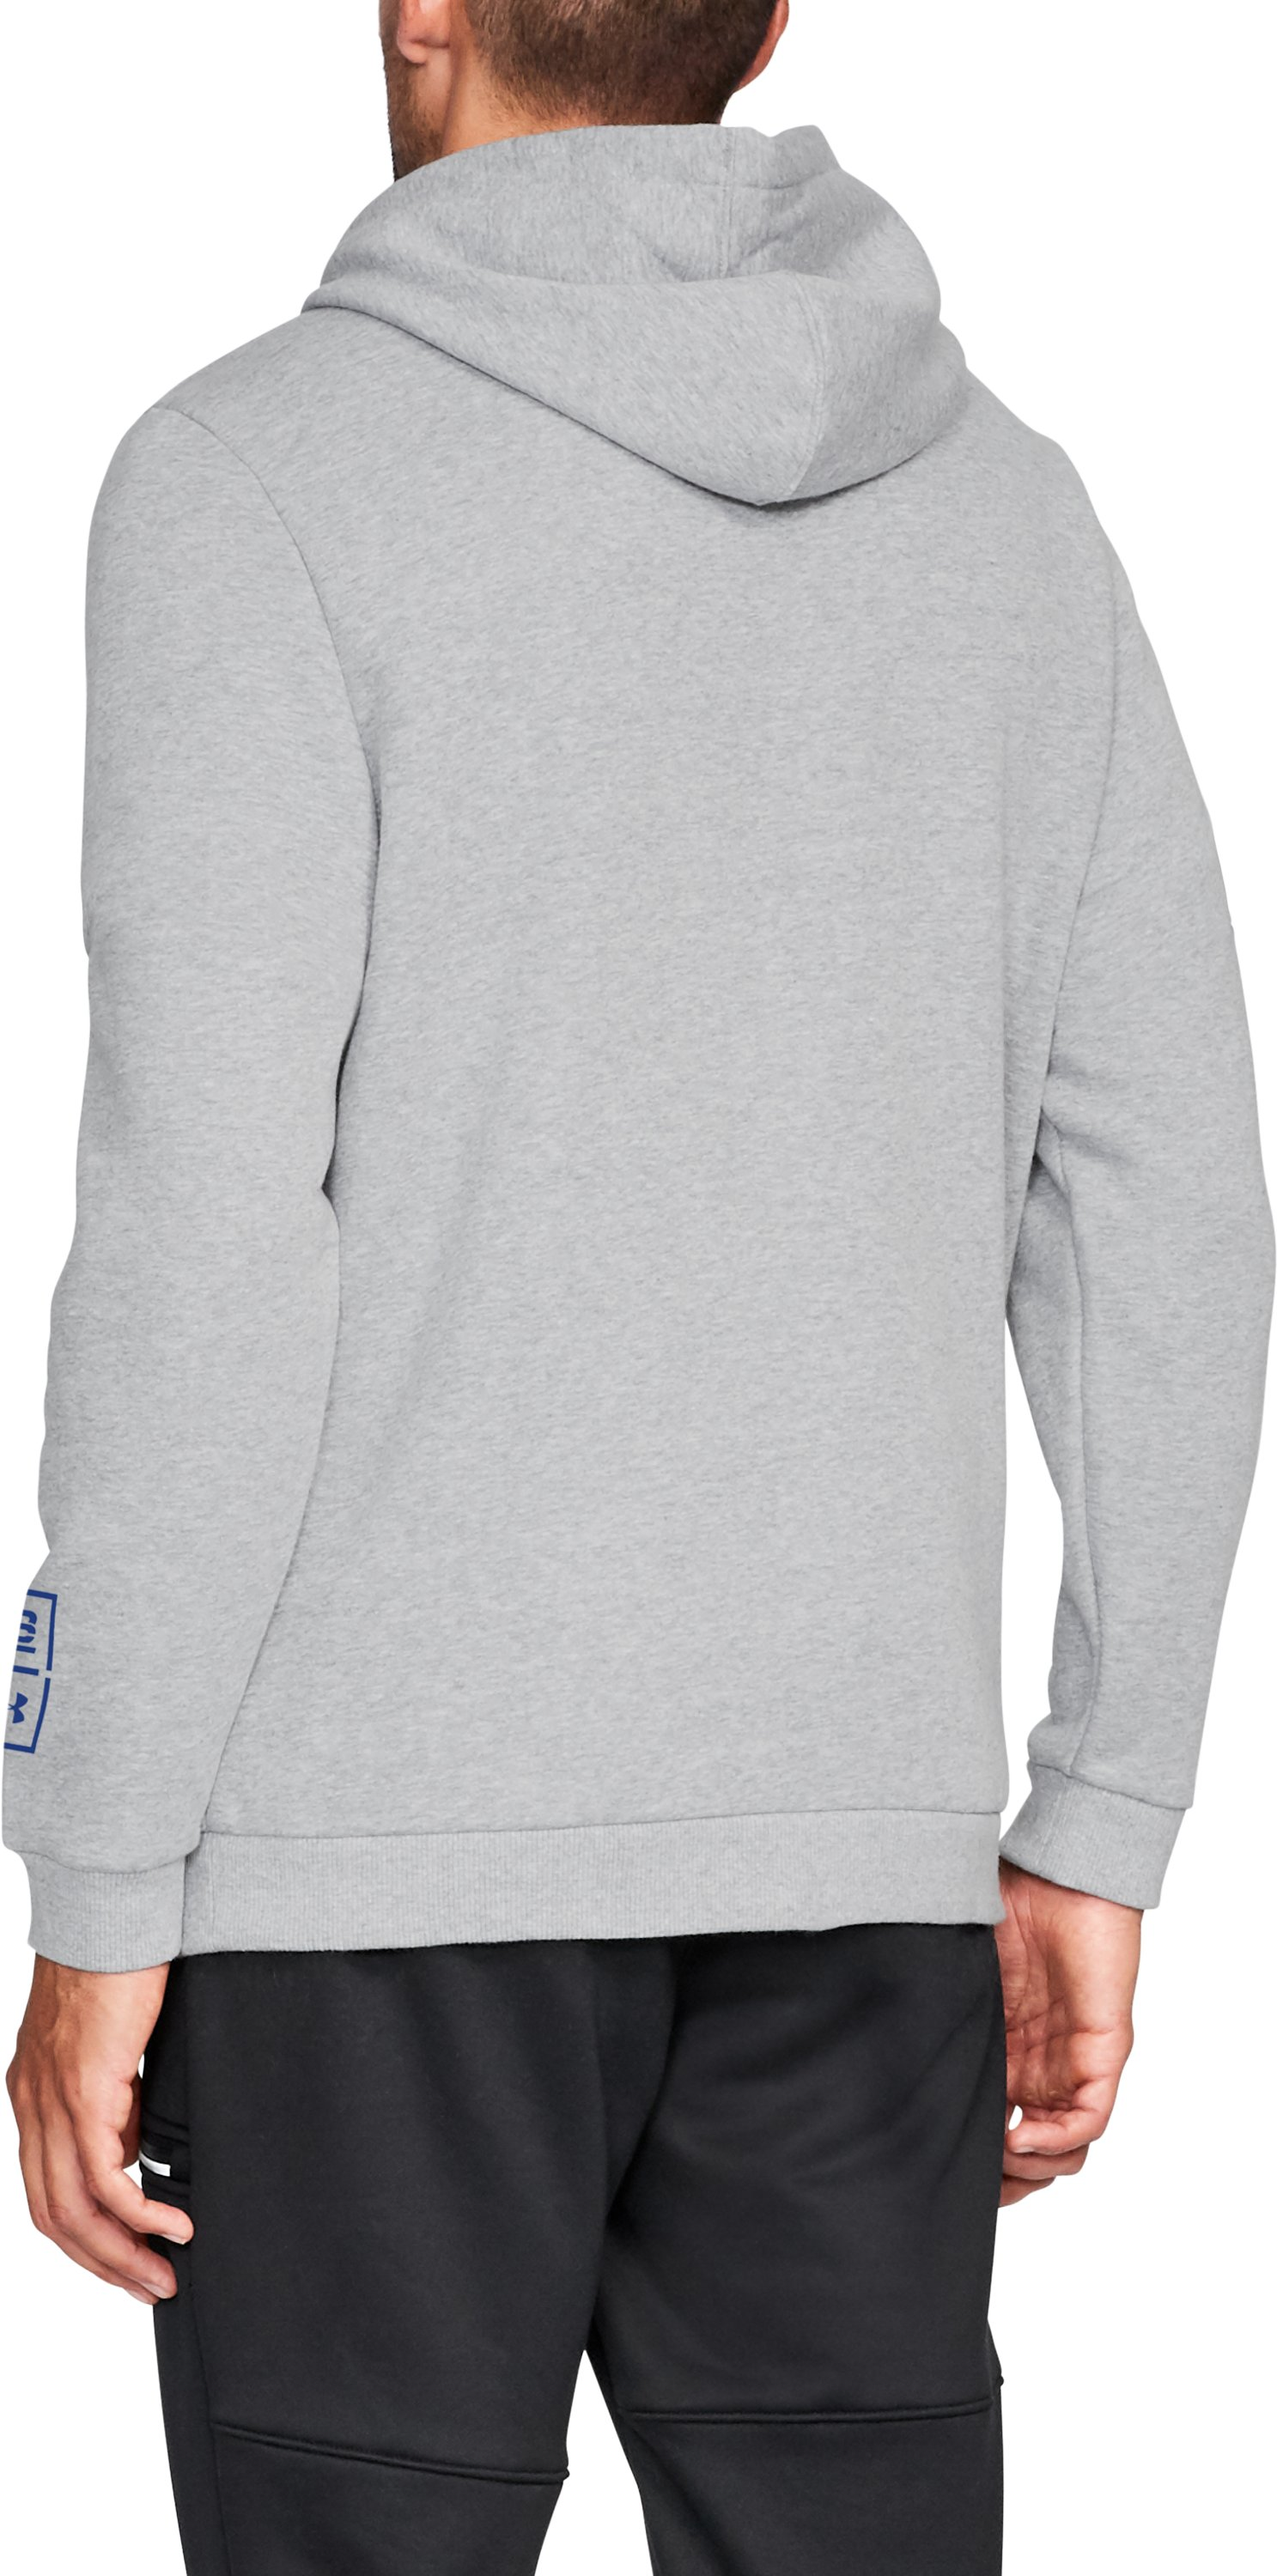 Men's TB12 199 Hoodie, STEEL LIGHT HEATHER, undefined